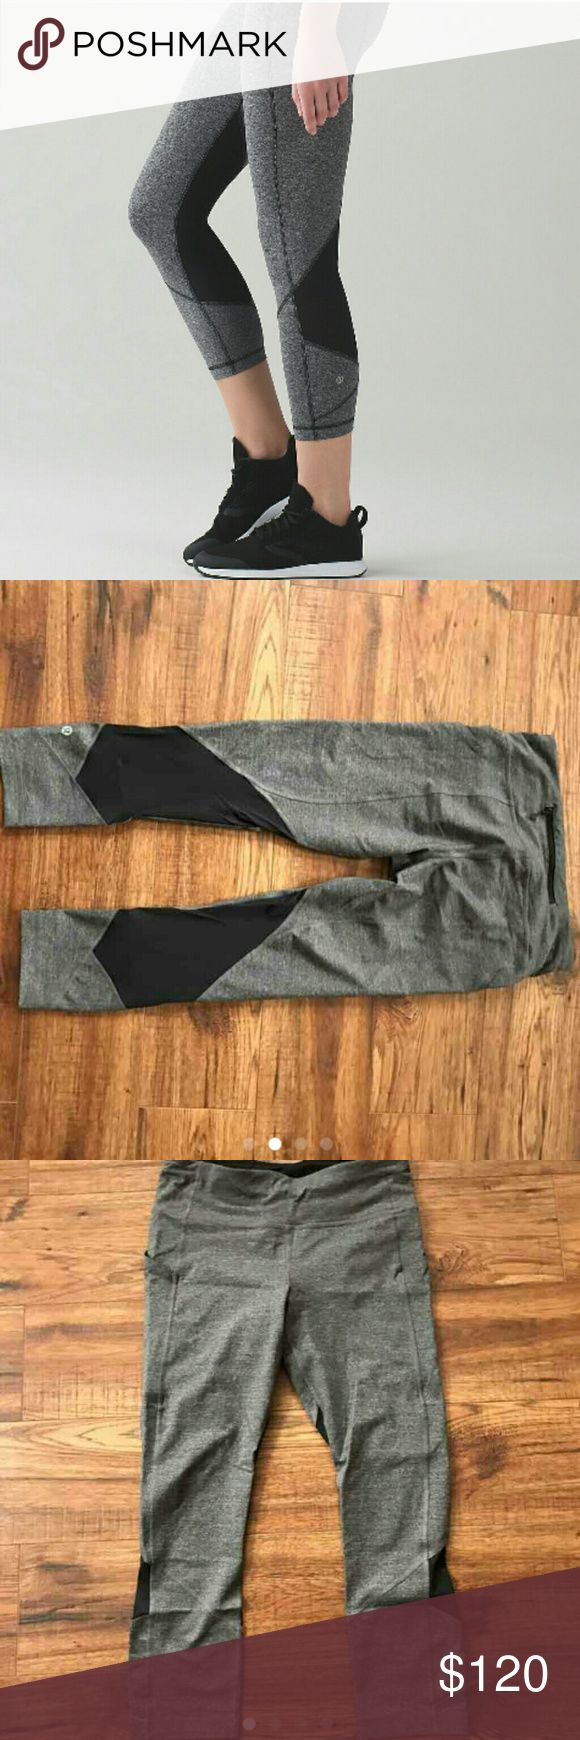 (4) LULULEMON PACE RIVAL CROP Size 4 NWOT tried on once and pulled rip tag off, but the dot size is confirmed in the waistband pocket as a 4. lululemon athletica Pants Track Pants & Joggers